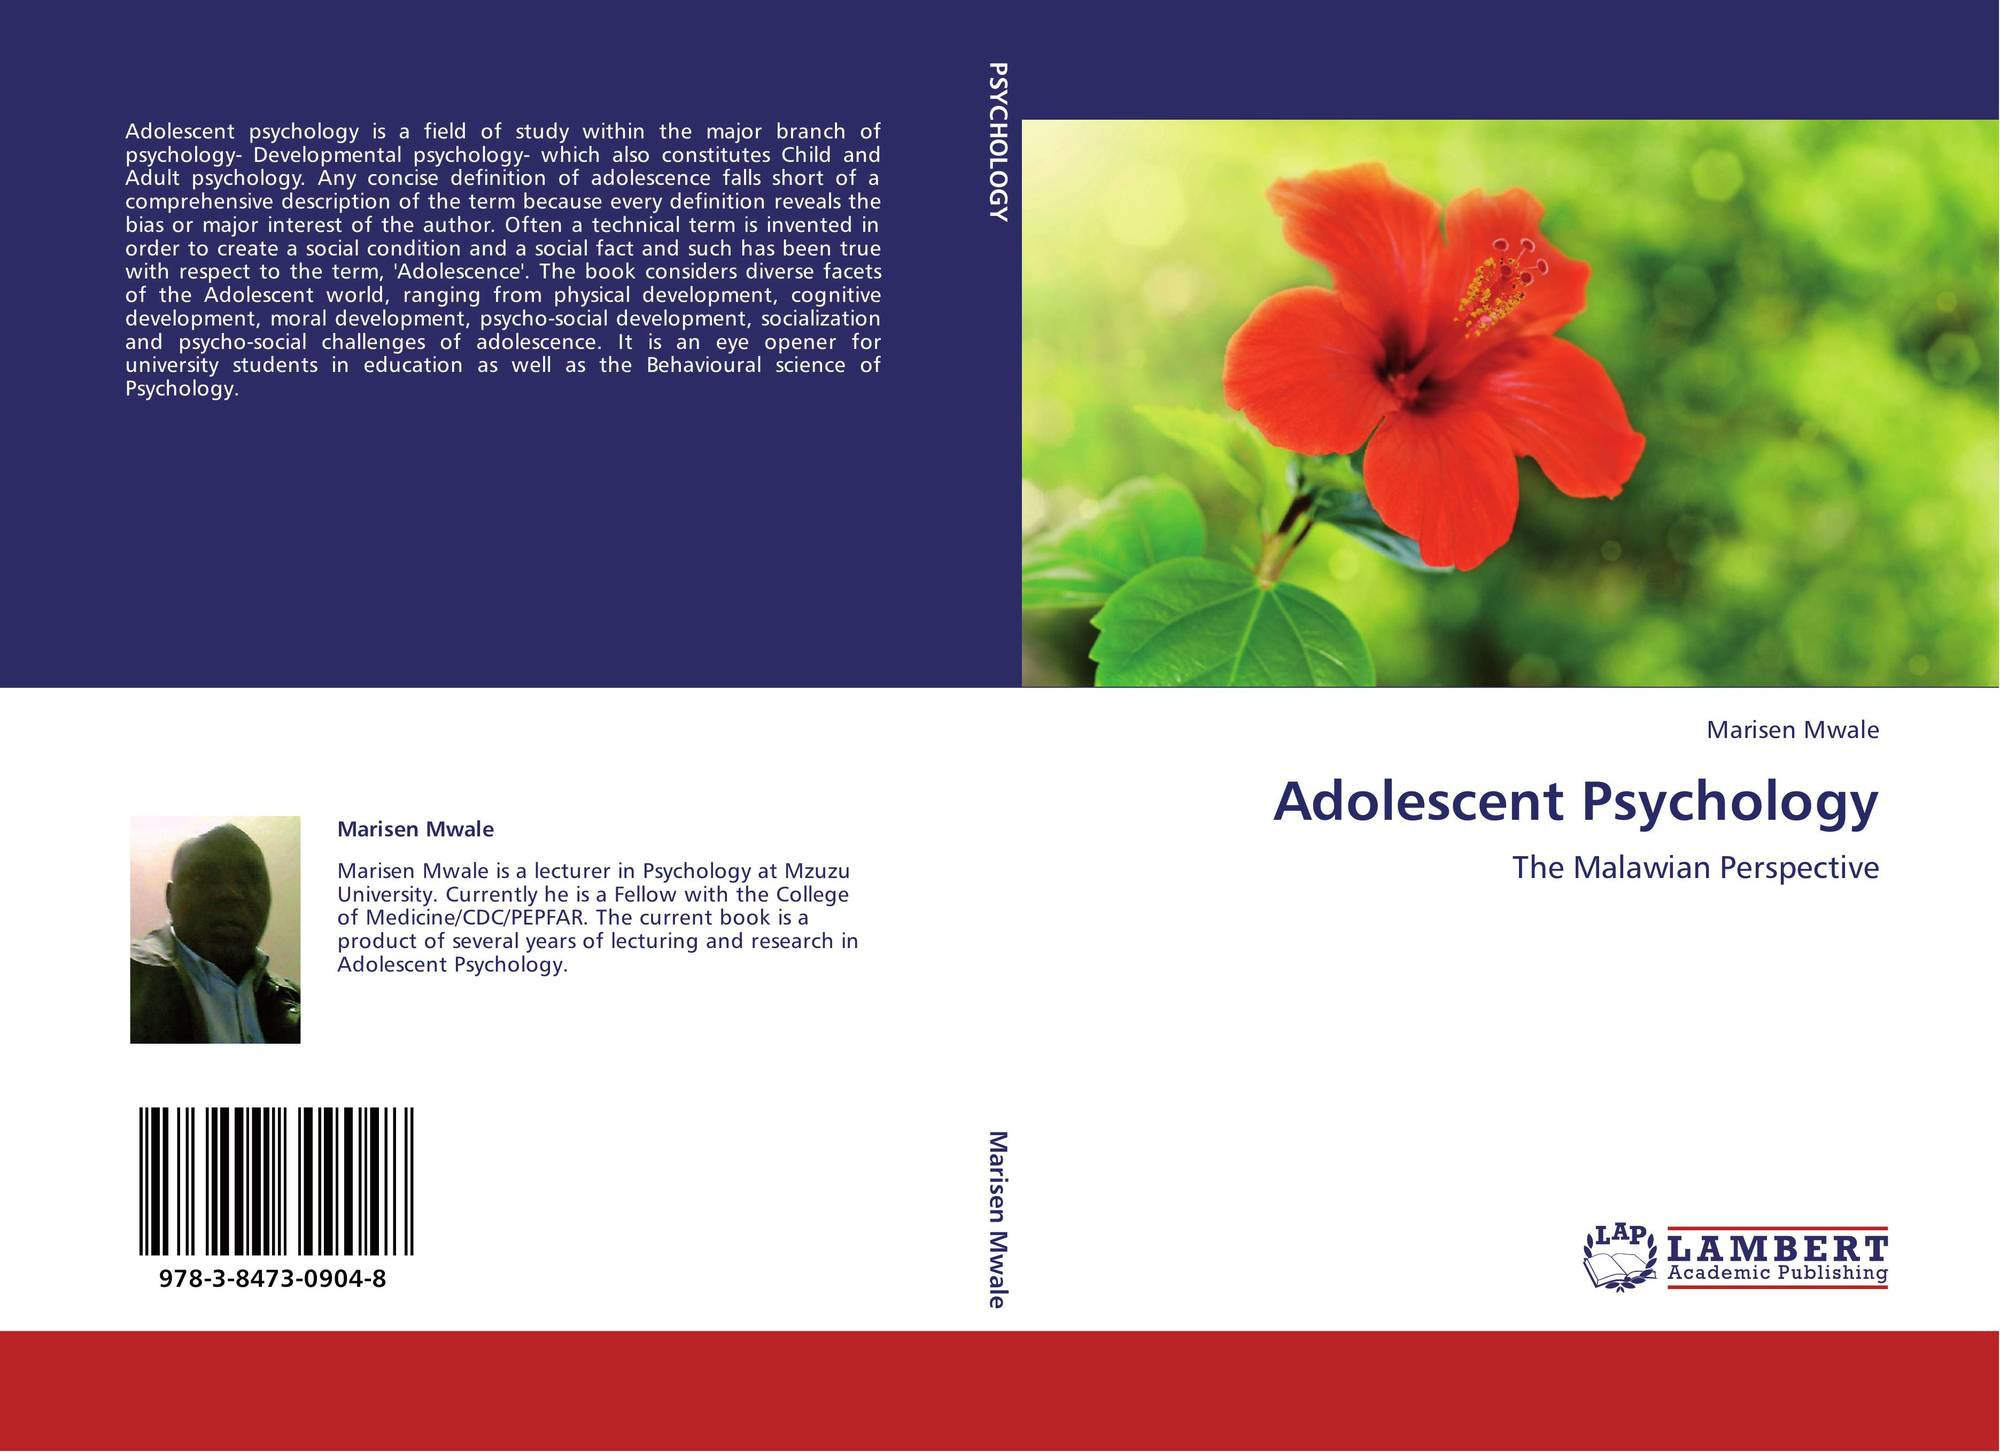 an analysis of the use of crack in the modern society for the adolescents Challenges facing a changing society the application of modern statistical methods provides an to preventing tobacco use among children and adolescents.